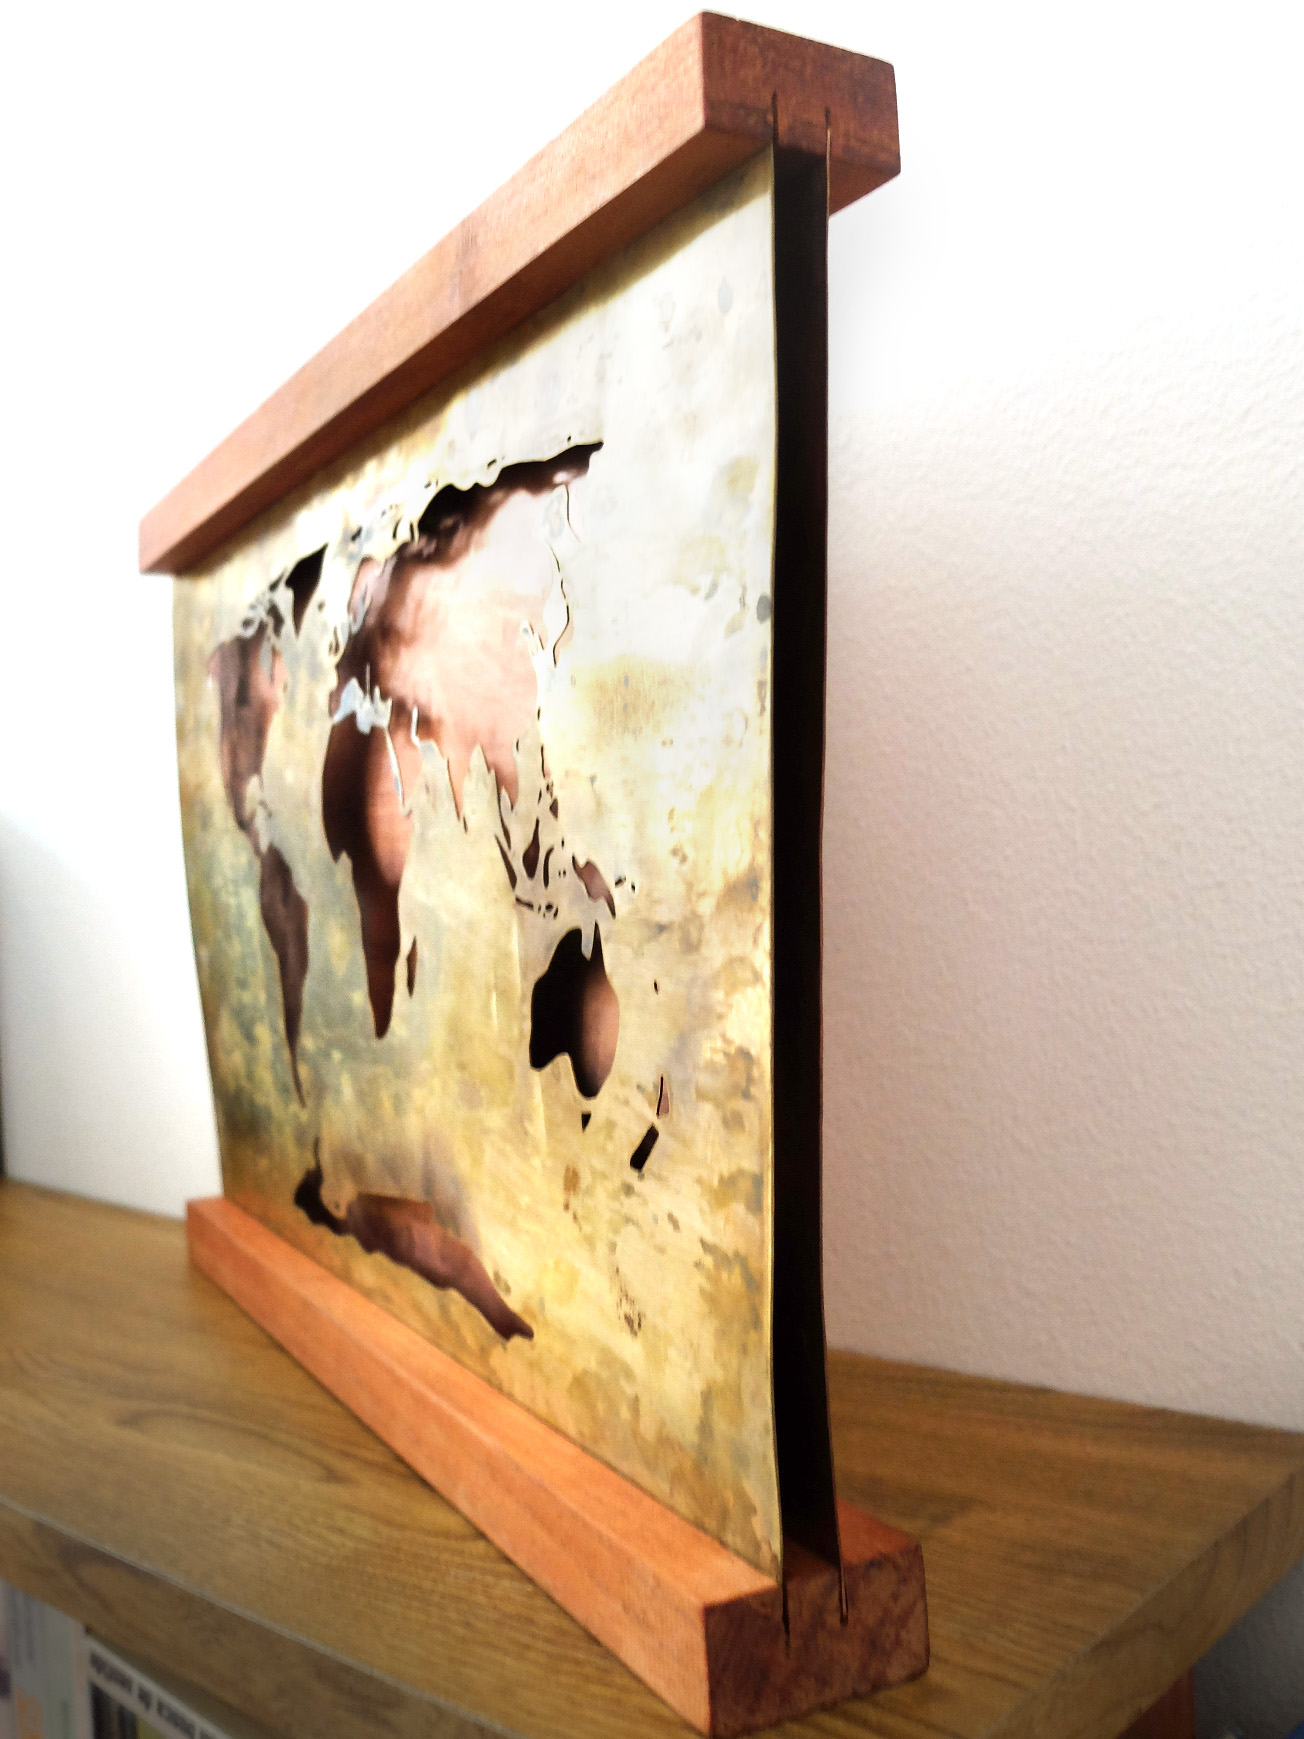 World map sa maria hermansson glass and metal art handmade world map in two layers of metal front sheet of brass with the continents sawed out by hand and a copper sheet behind it held steady in a frame gumiabroncs Image collections